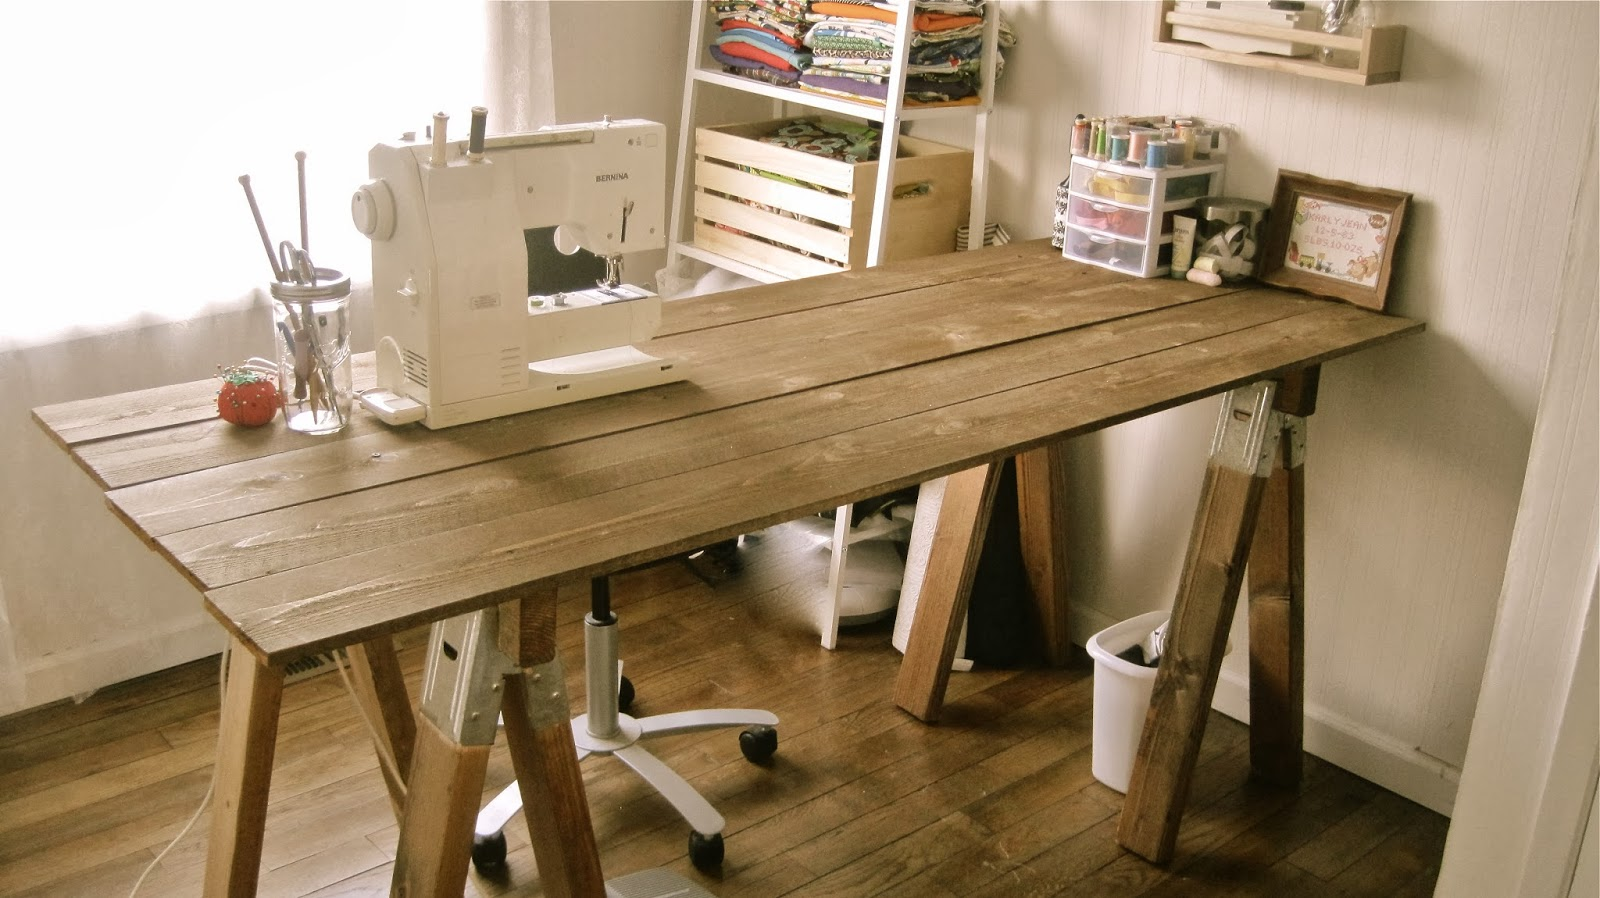 Muddy Boots & Bobbins: Rustic SawHorse Table Tutorial